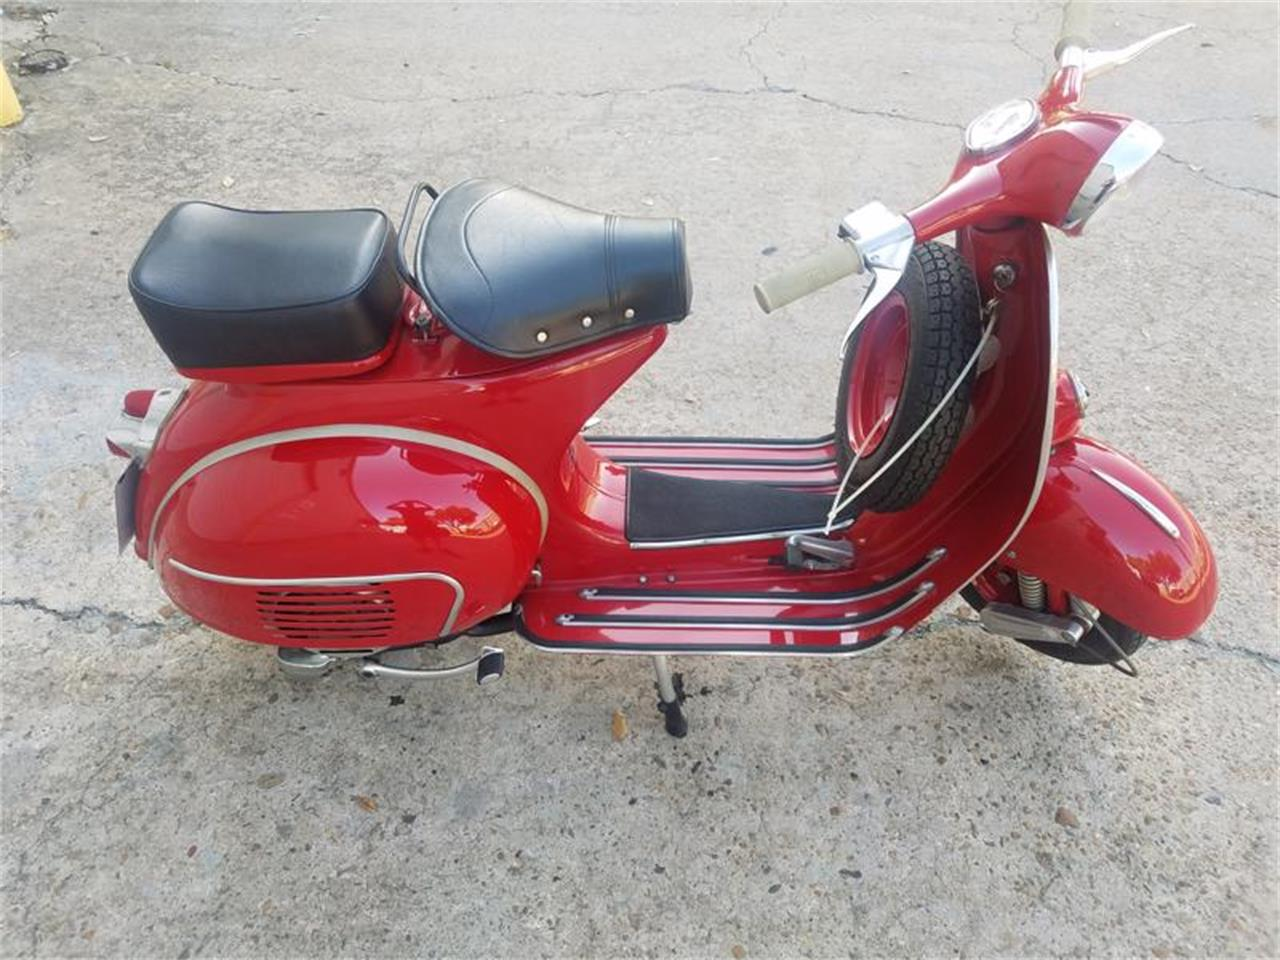 1961 Vespa Scooter (CC-1272997) for sale in HOUSTON, Texas